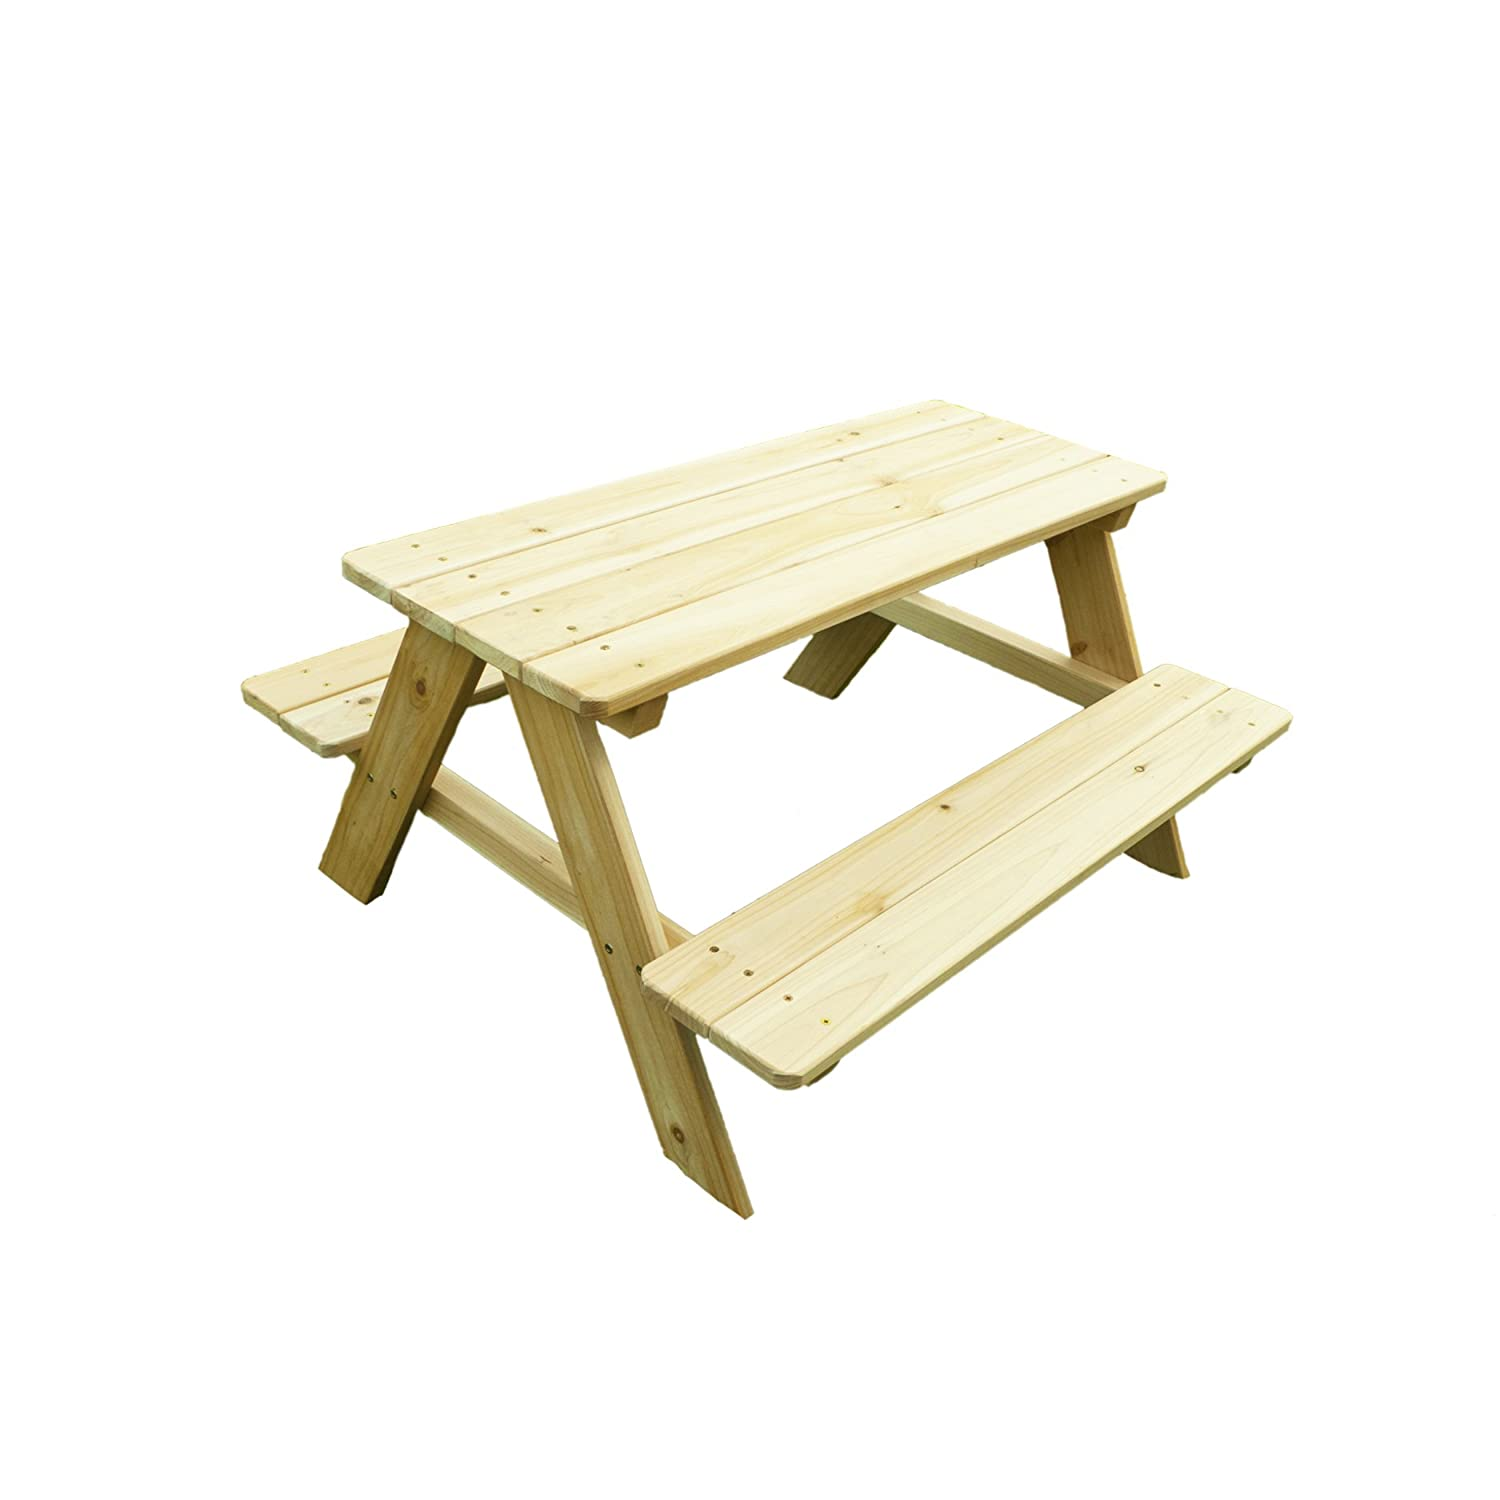 Amazon.com : Merry Garden Kids Wooden Picnic Bench : Outdoor Benches :  Garden U0026 Outdoor